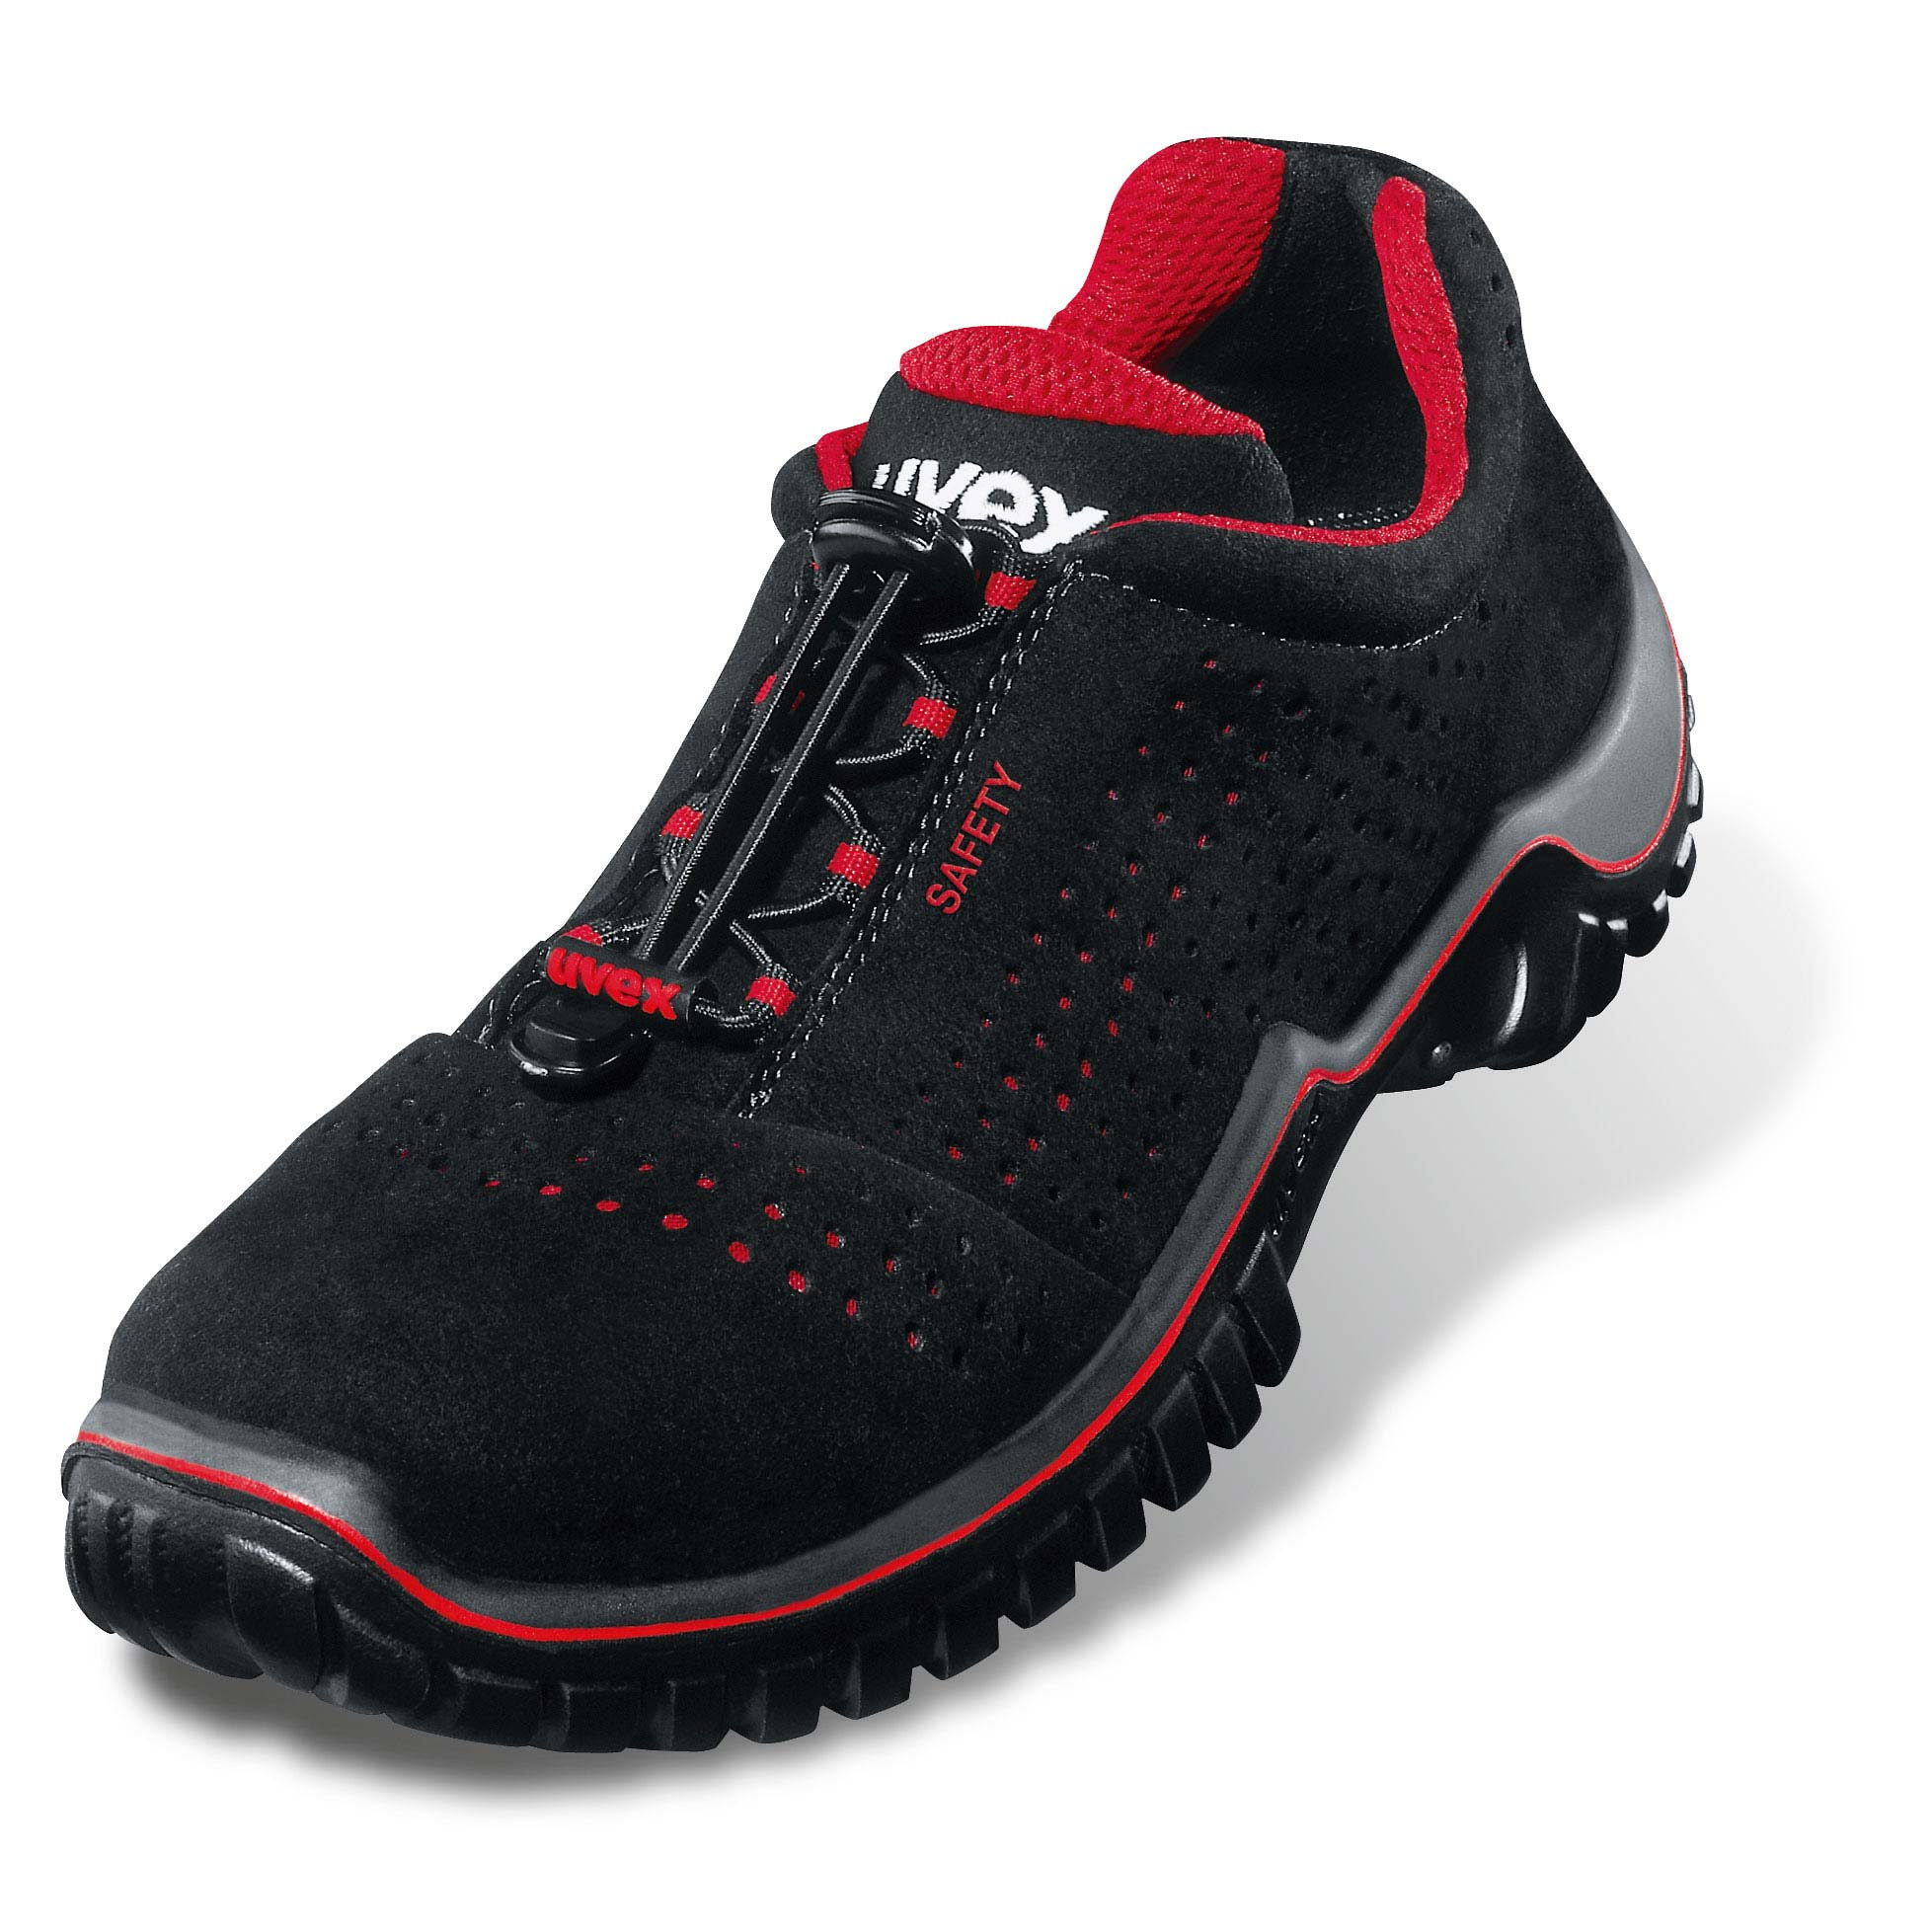 Uvex Motion Style S1 Src Perforated Shoe Safety Shoes